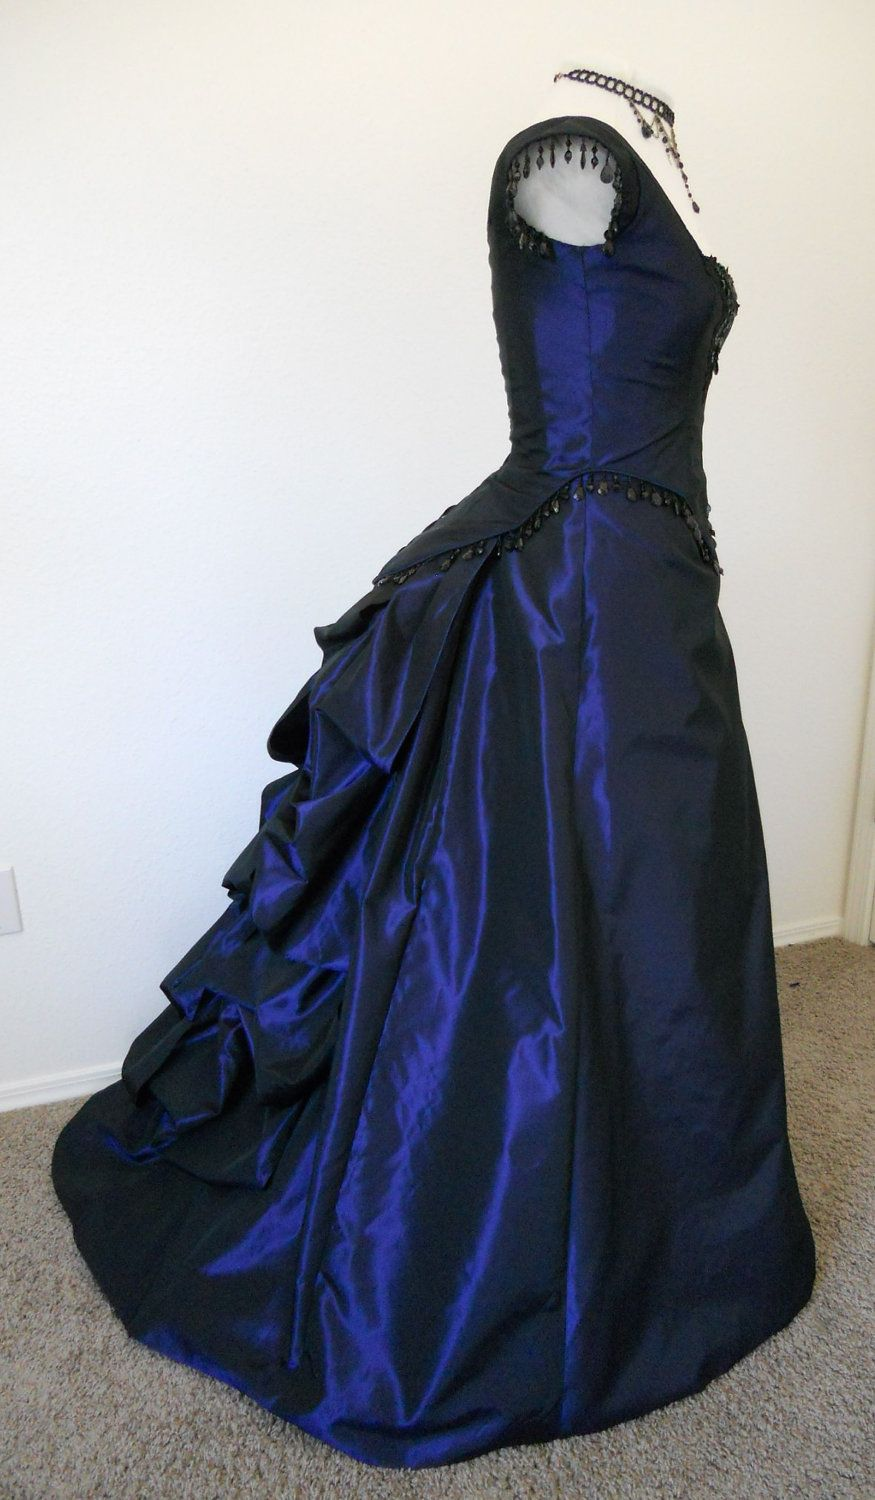 Victorian Gothic Bustled Prom Dress Ball Gown 425 00 Via Etsy Ball Dresses Dresses Prom Dresses Ball Gown [ 1500 x 875 Pixel ]